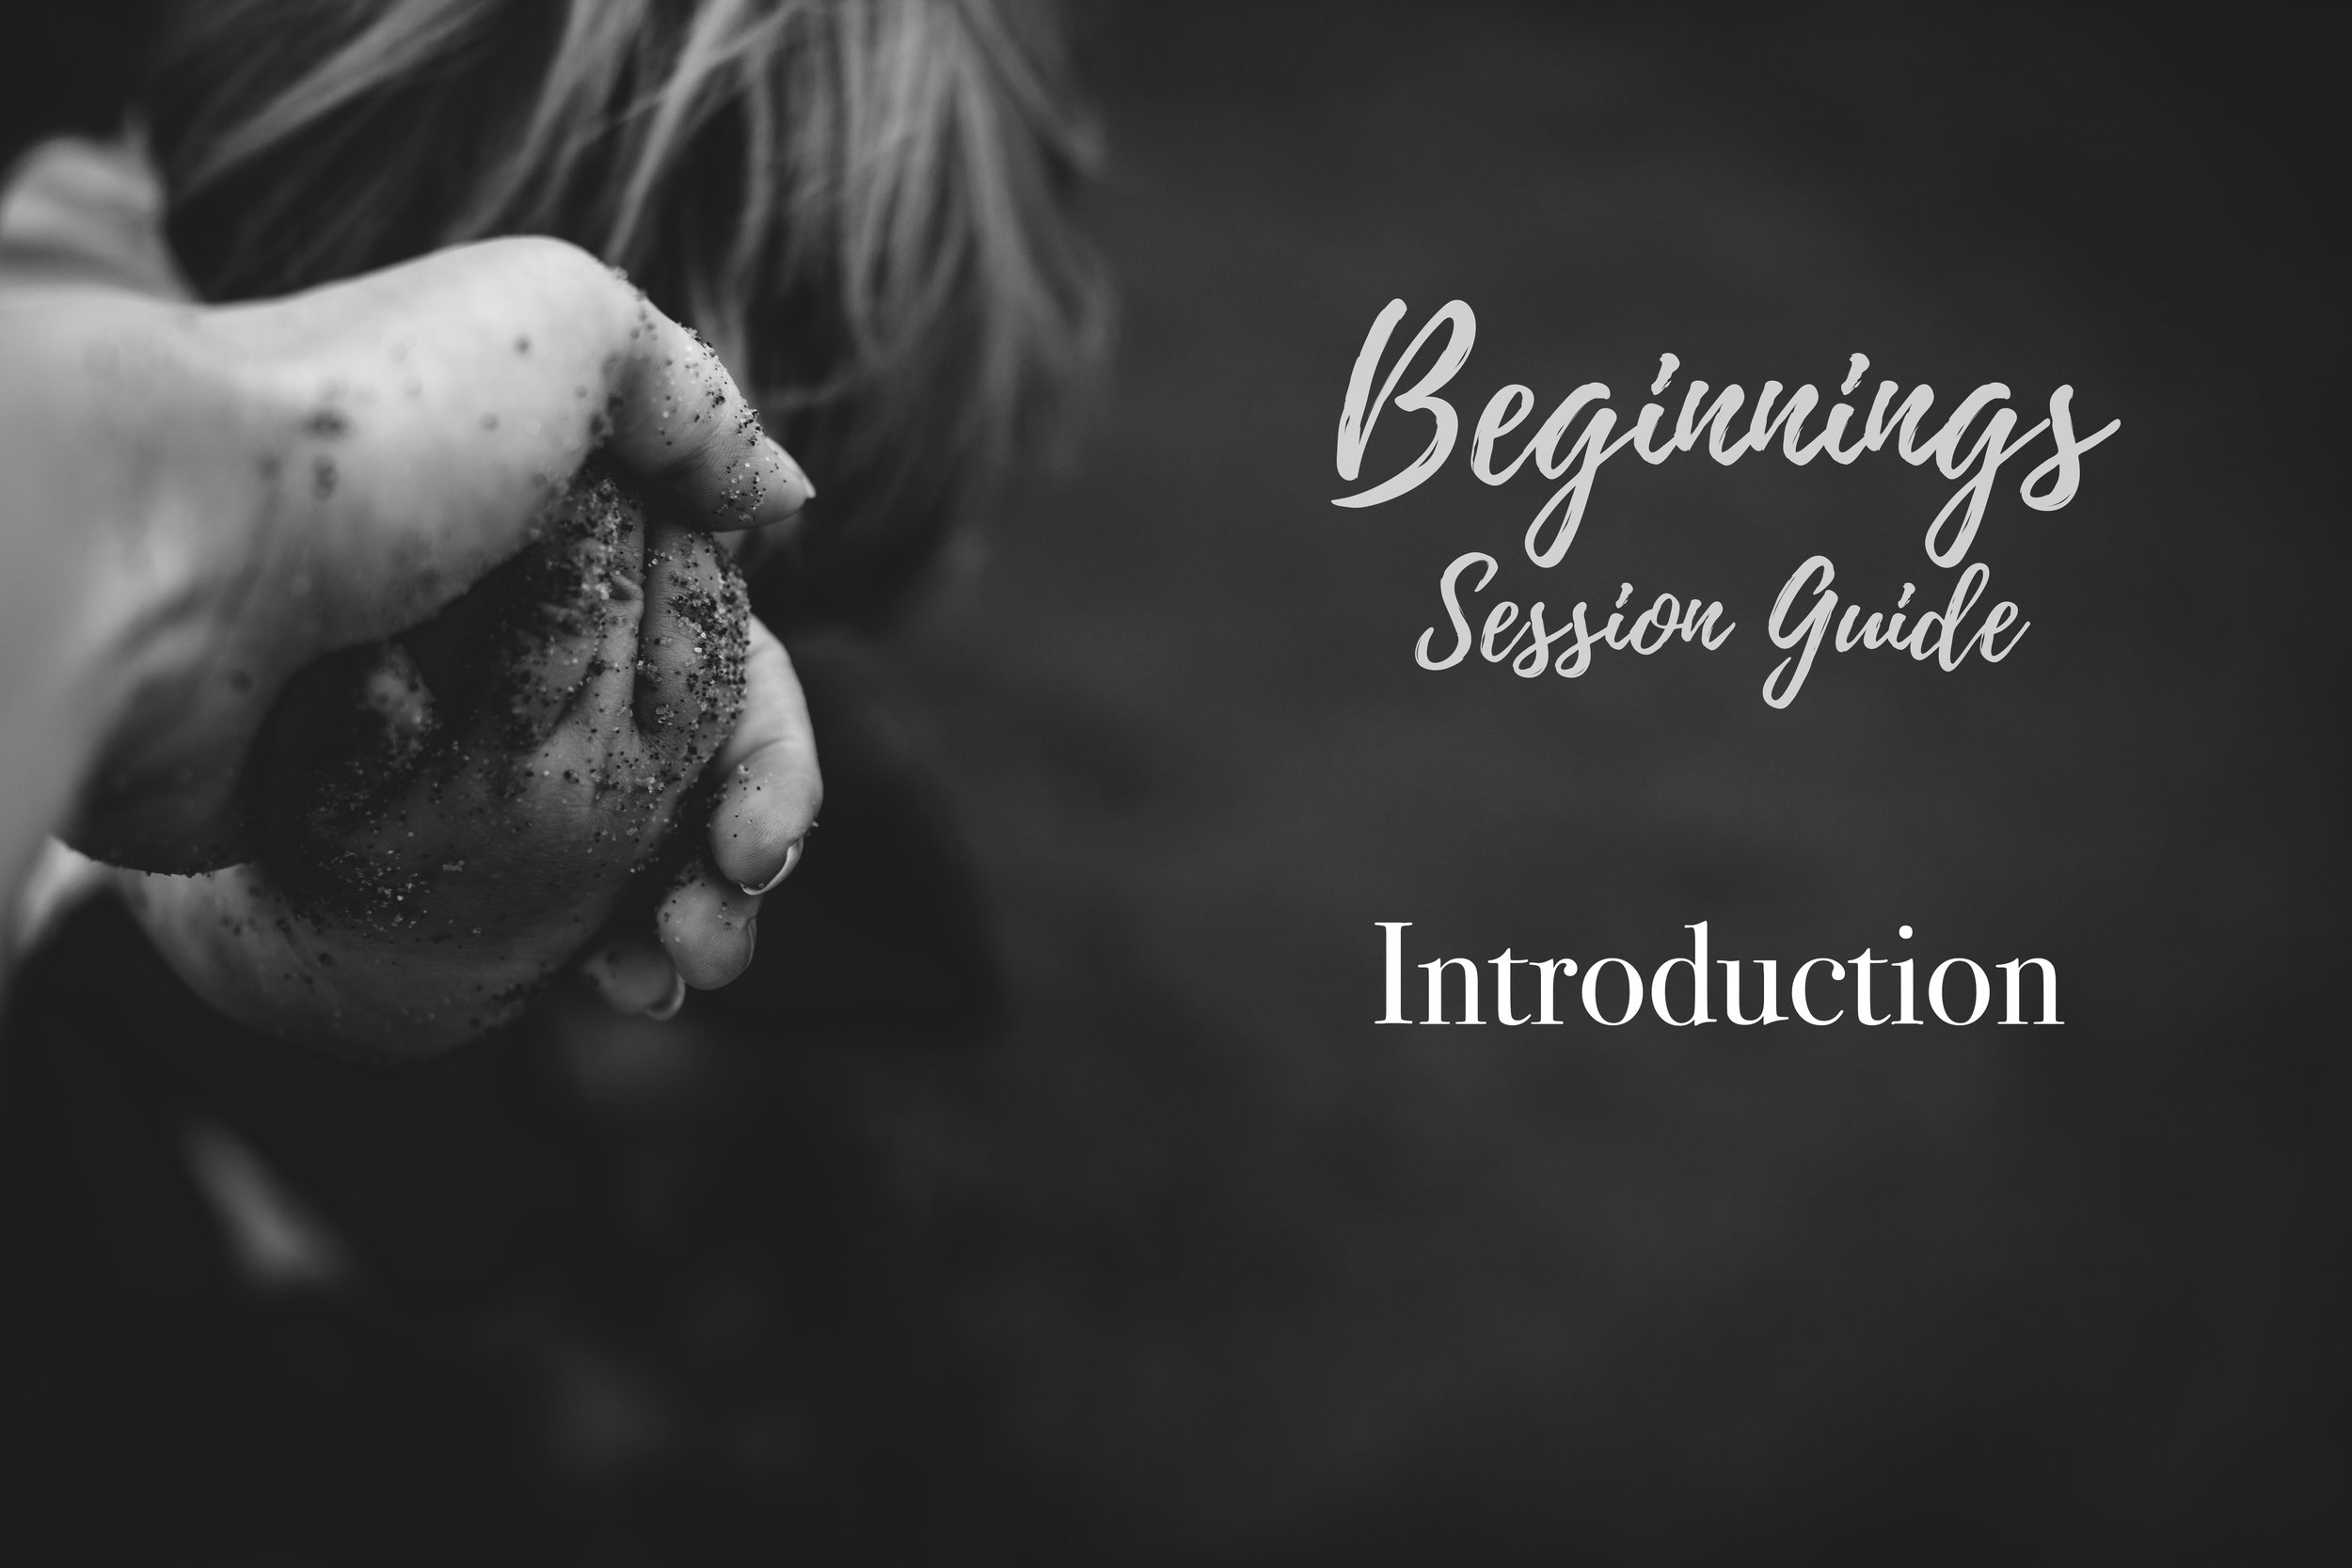 sessionguide-intro.jpg